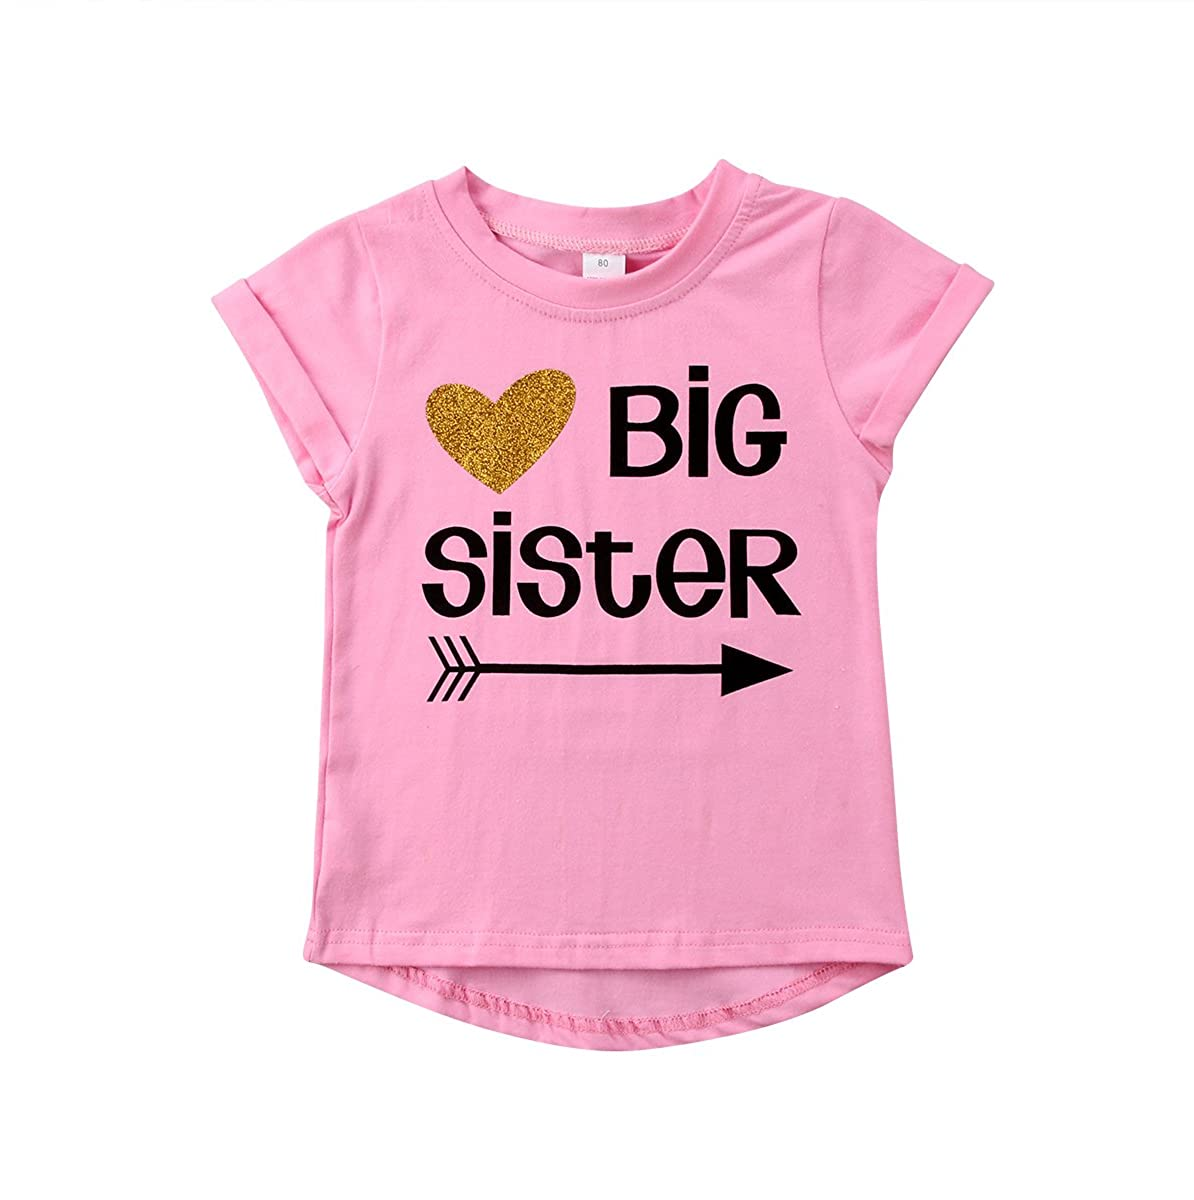 Big Sister & Little Sister Clothing Family Matching Girls Fitted T-Shirt & Toddler Baby Girls Bodysuit Set (Big Sister Shirt, 2-3Y)